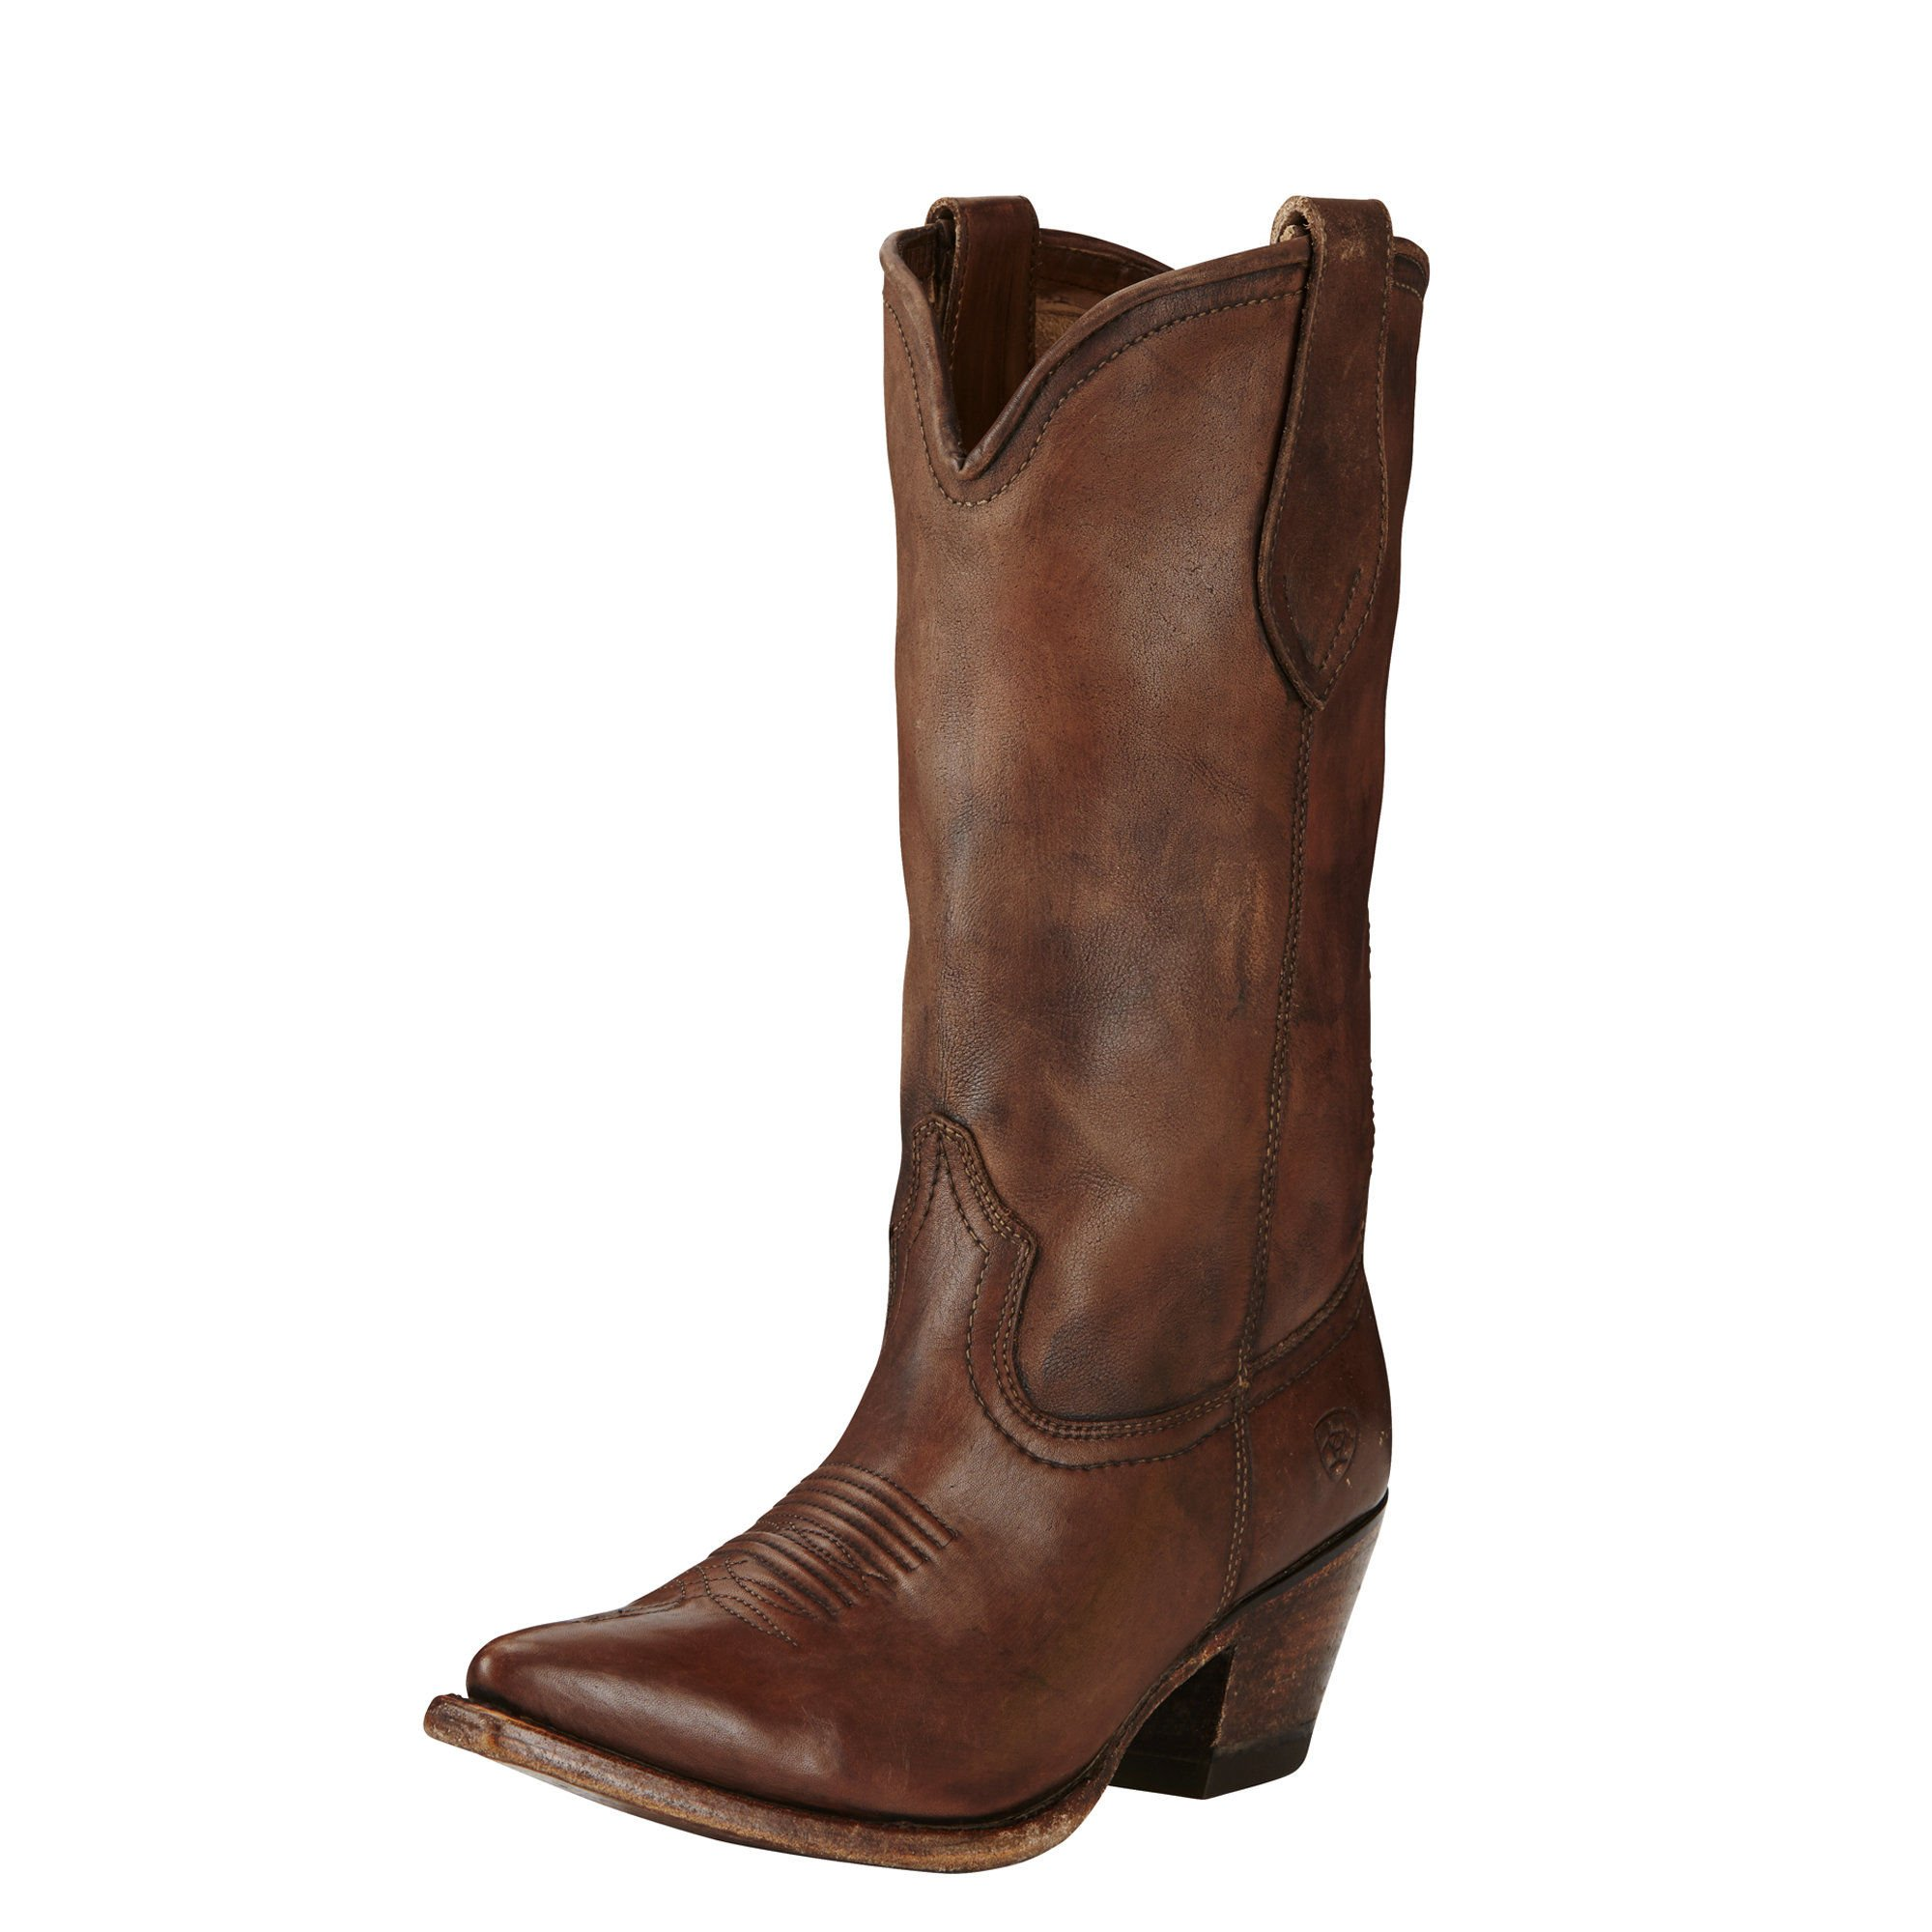 Ariat Women's Josefina Western Cowboy Boot, Naturally Distressed Brown, 7 B US